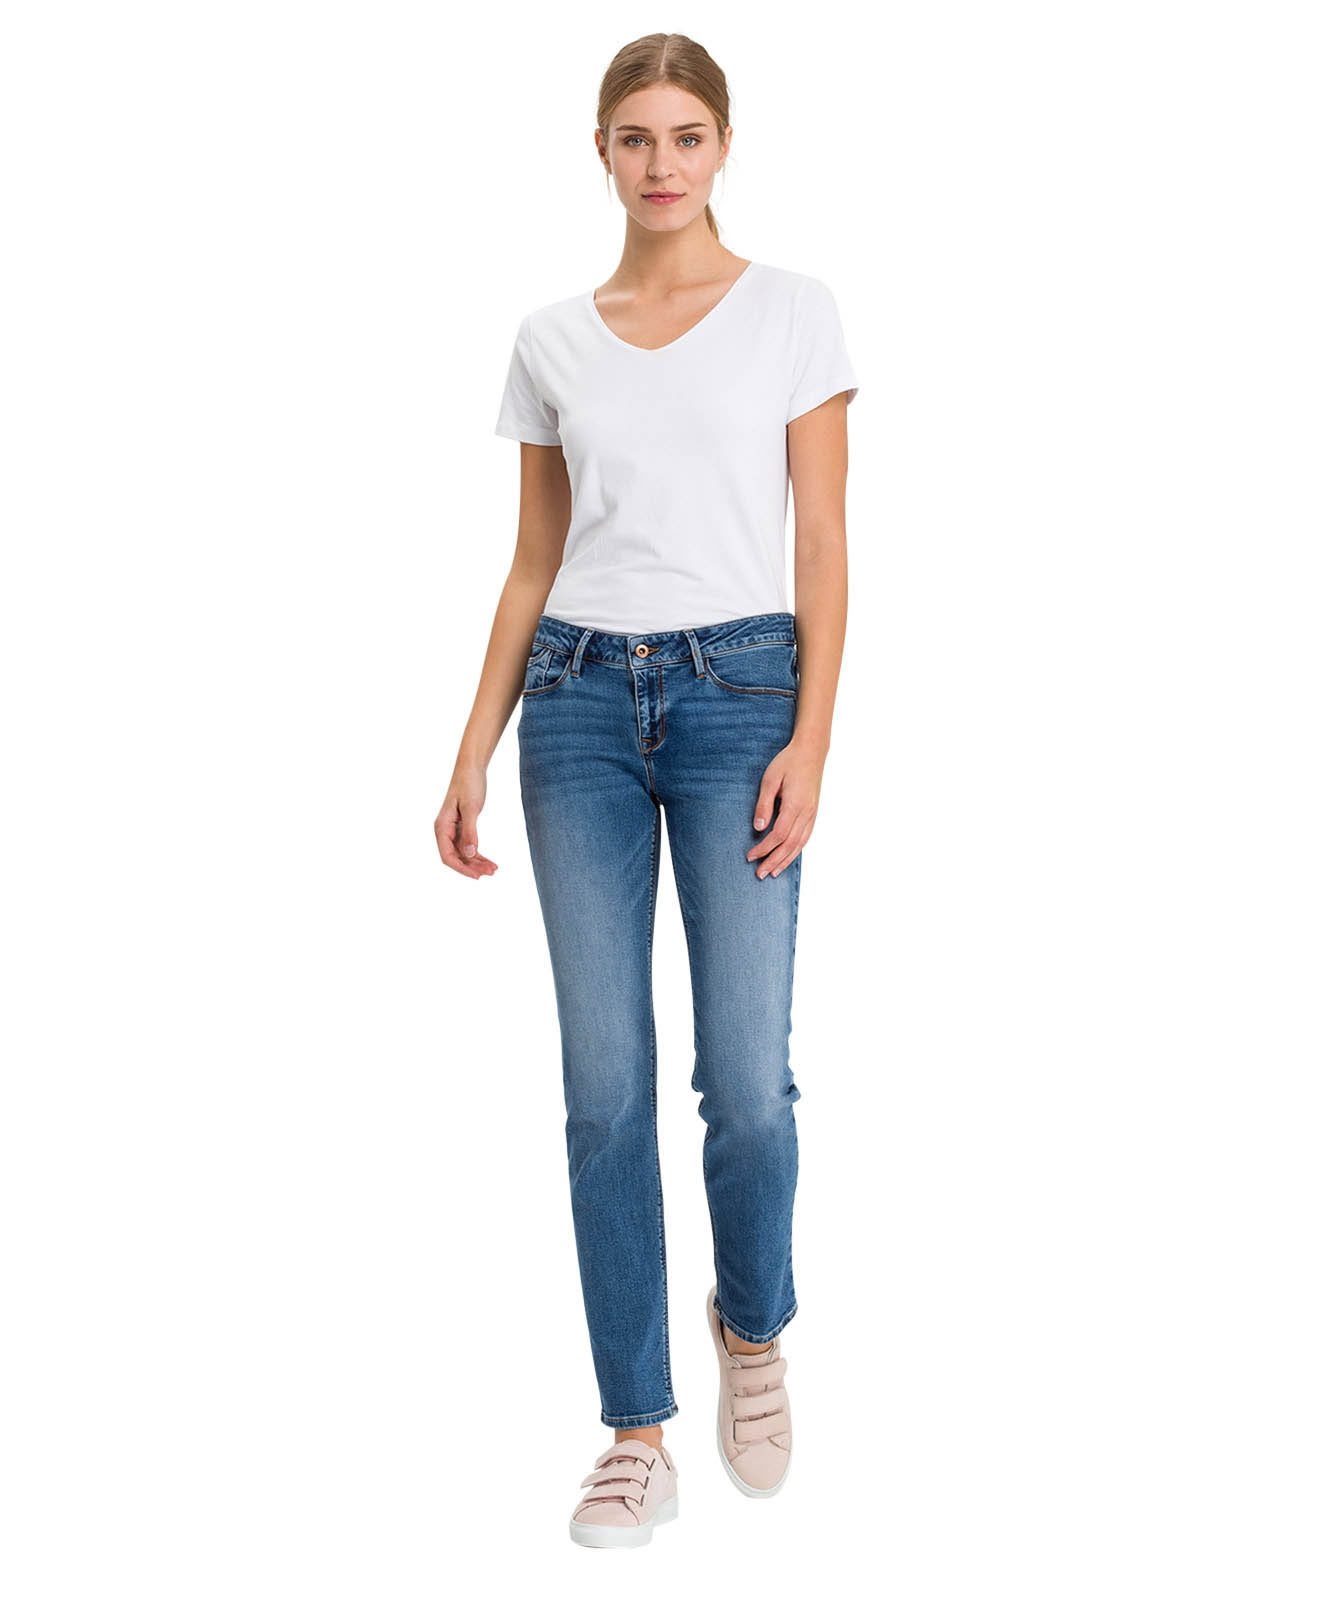 Hosen - Cross Straight Leg Jeans Rose in Mid Blue Used  - Onlineshop Jeans Meile